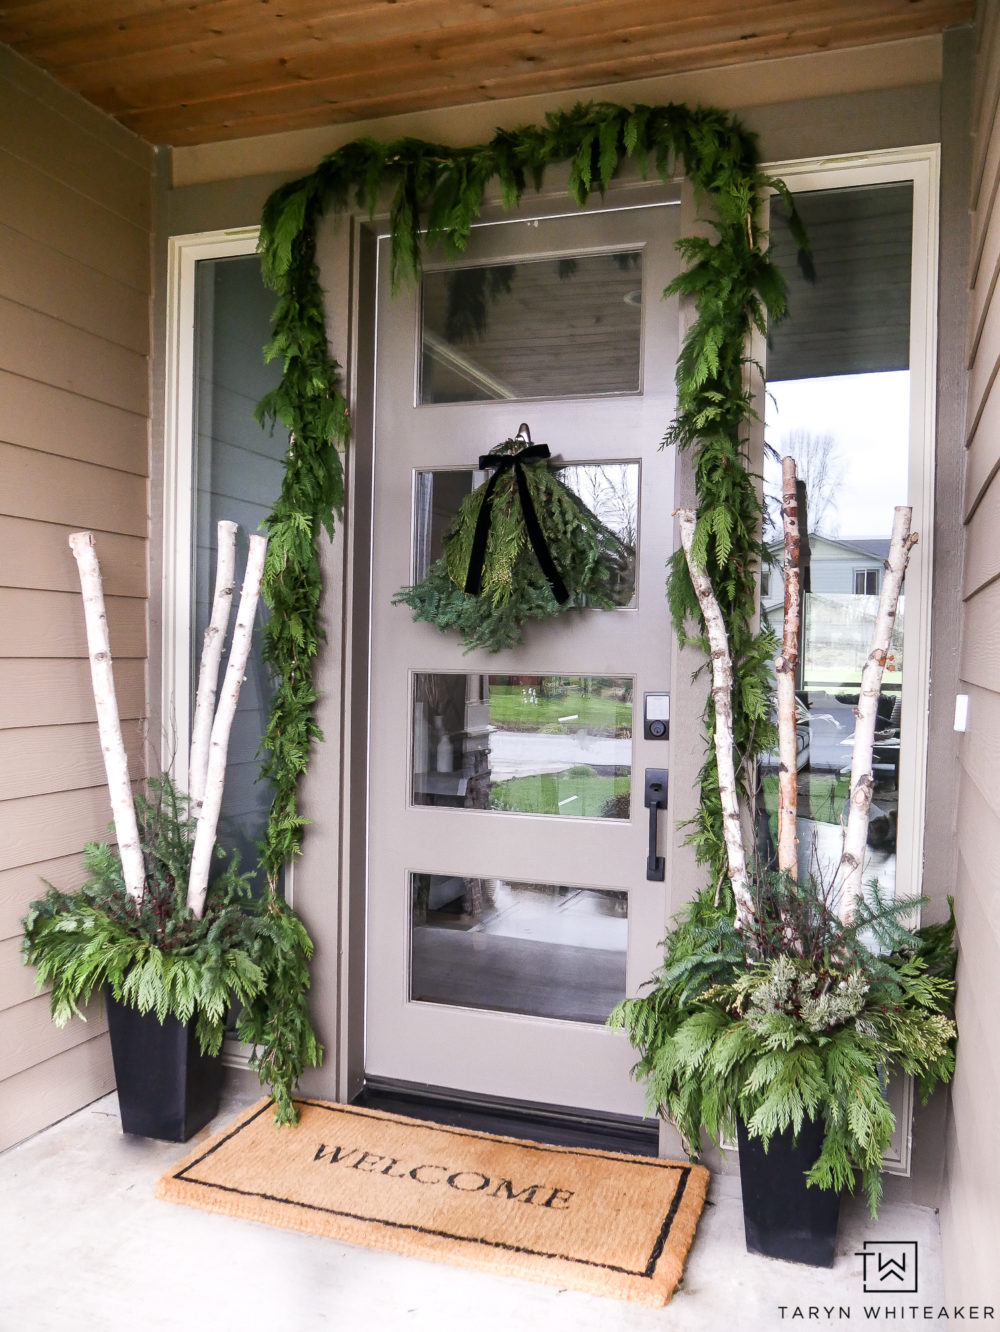 Classic Christmas Porch Decor using fresh green garland around the door and winter planters with birch logs!